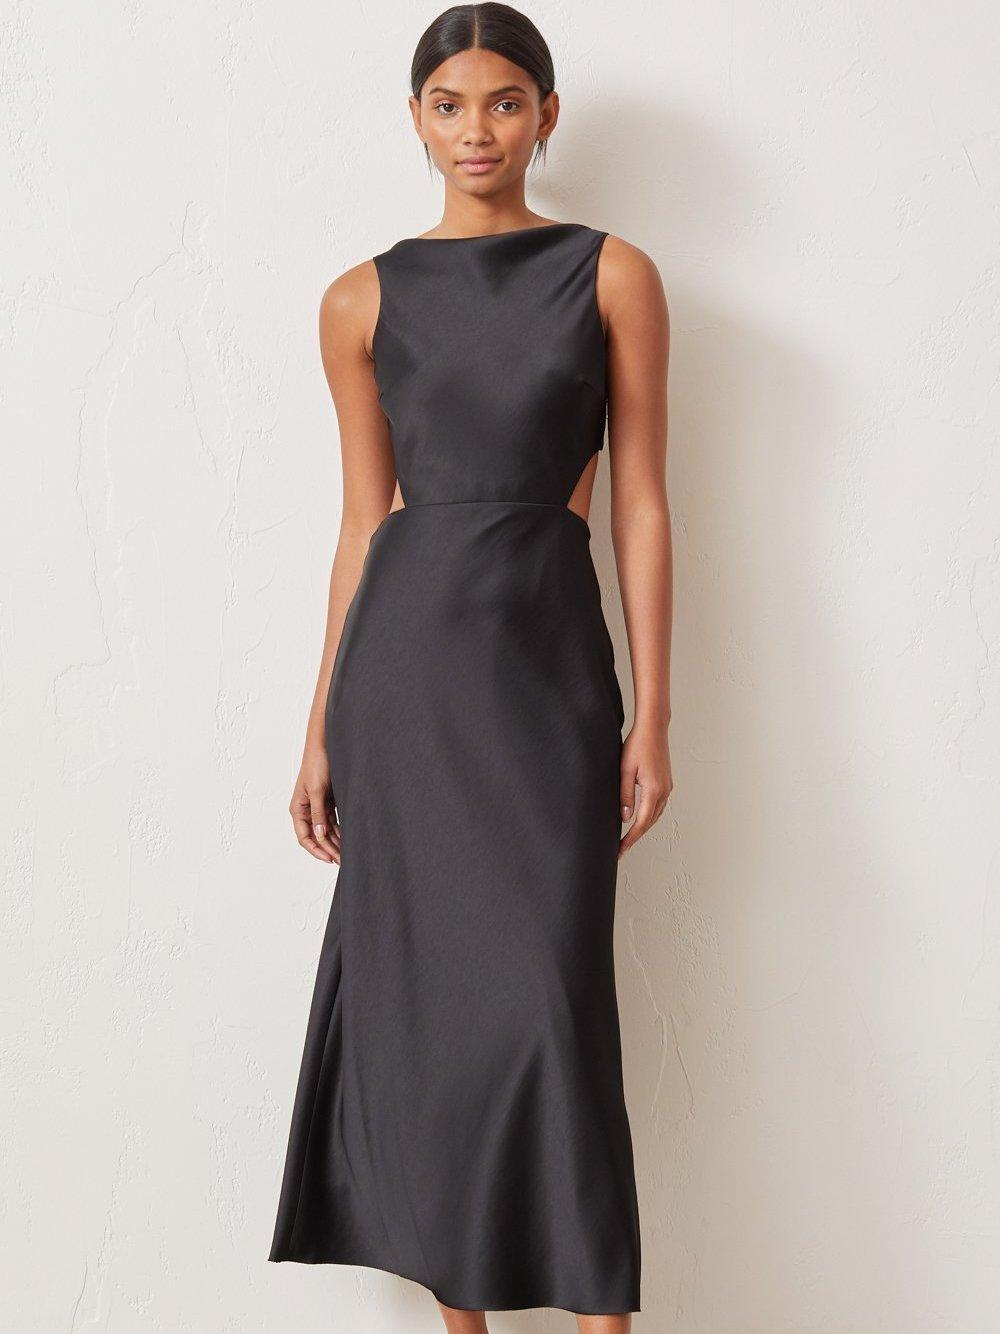 Kylie Black Bodycon Midi Dress With Knot Tie - New In from